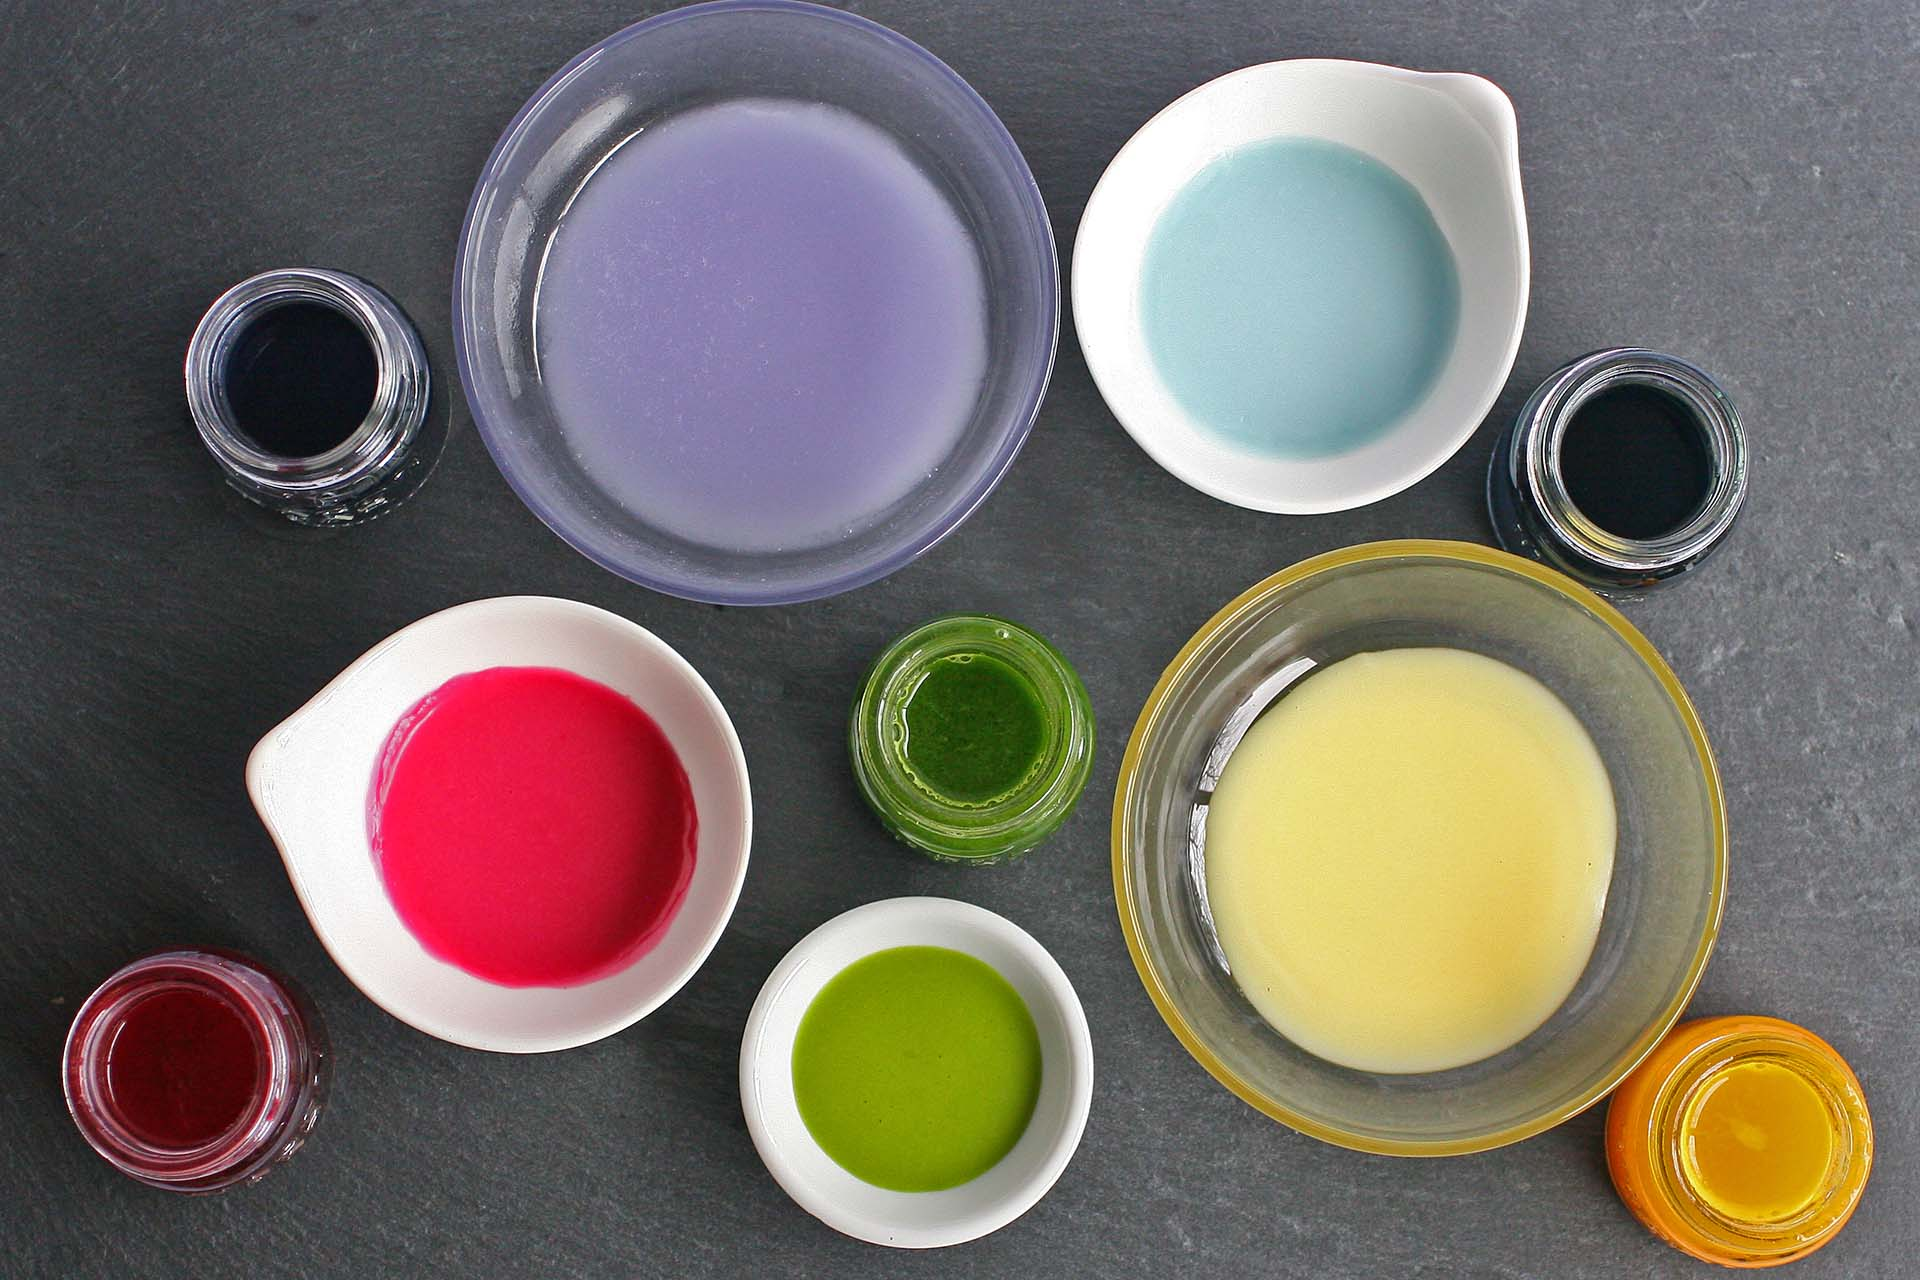 A variety of bowls and jars with various homemade food dyes in them (red, green, yellow, blue, purple).